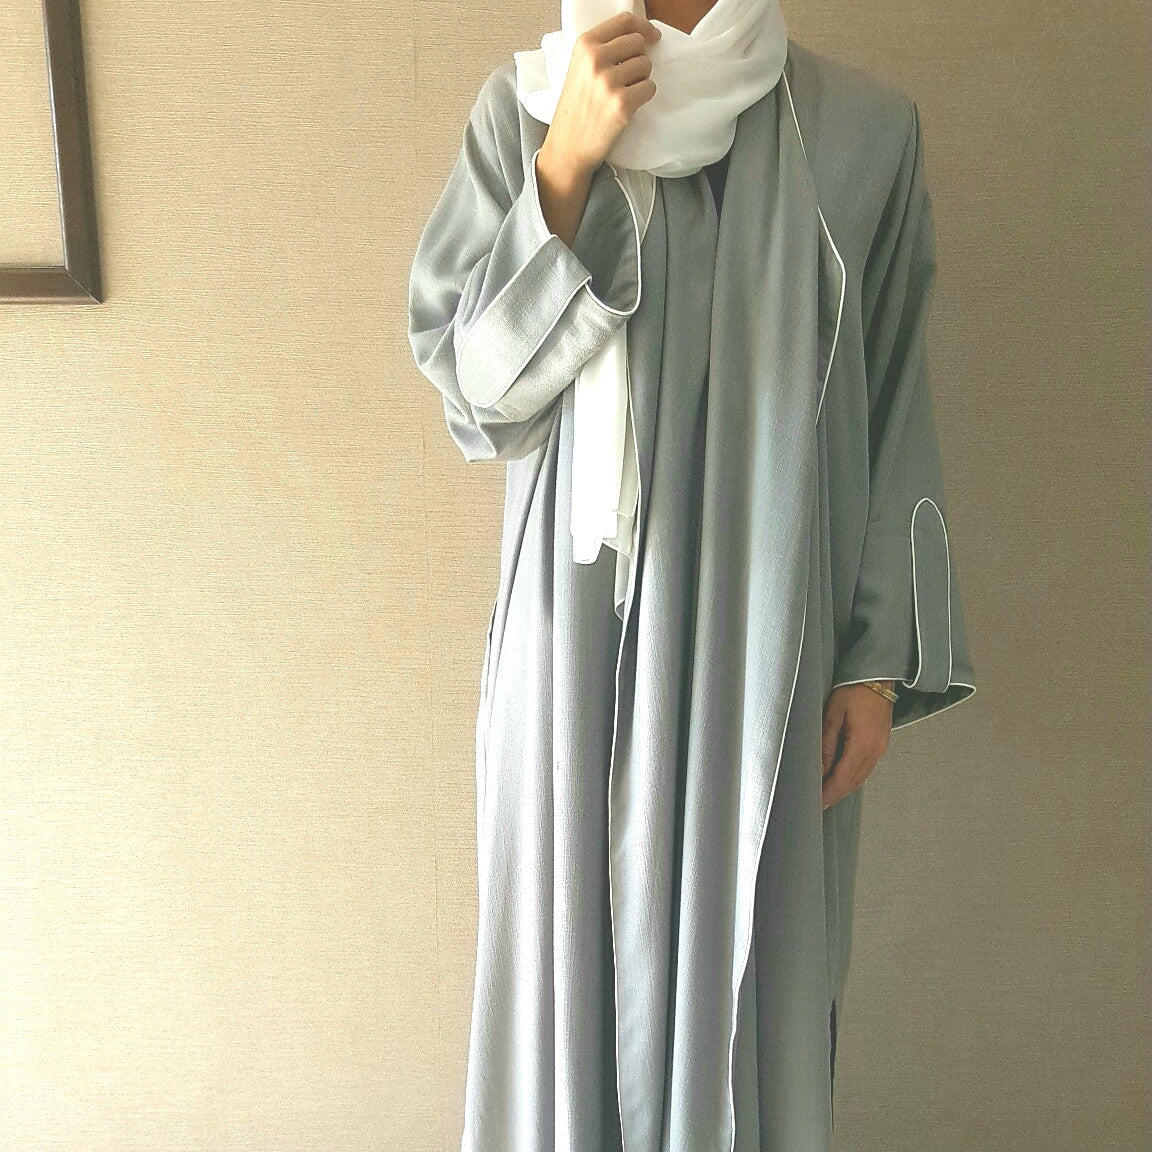 Stylish Grey Linen Abaya with White Piping